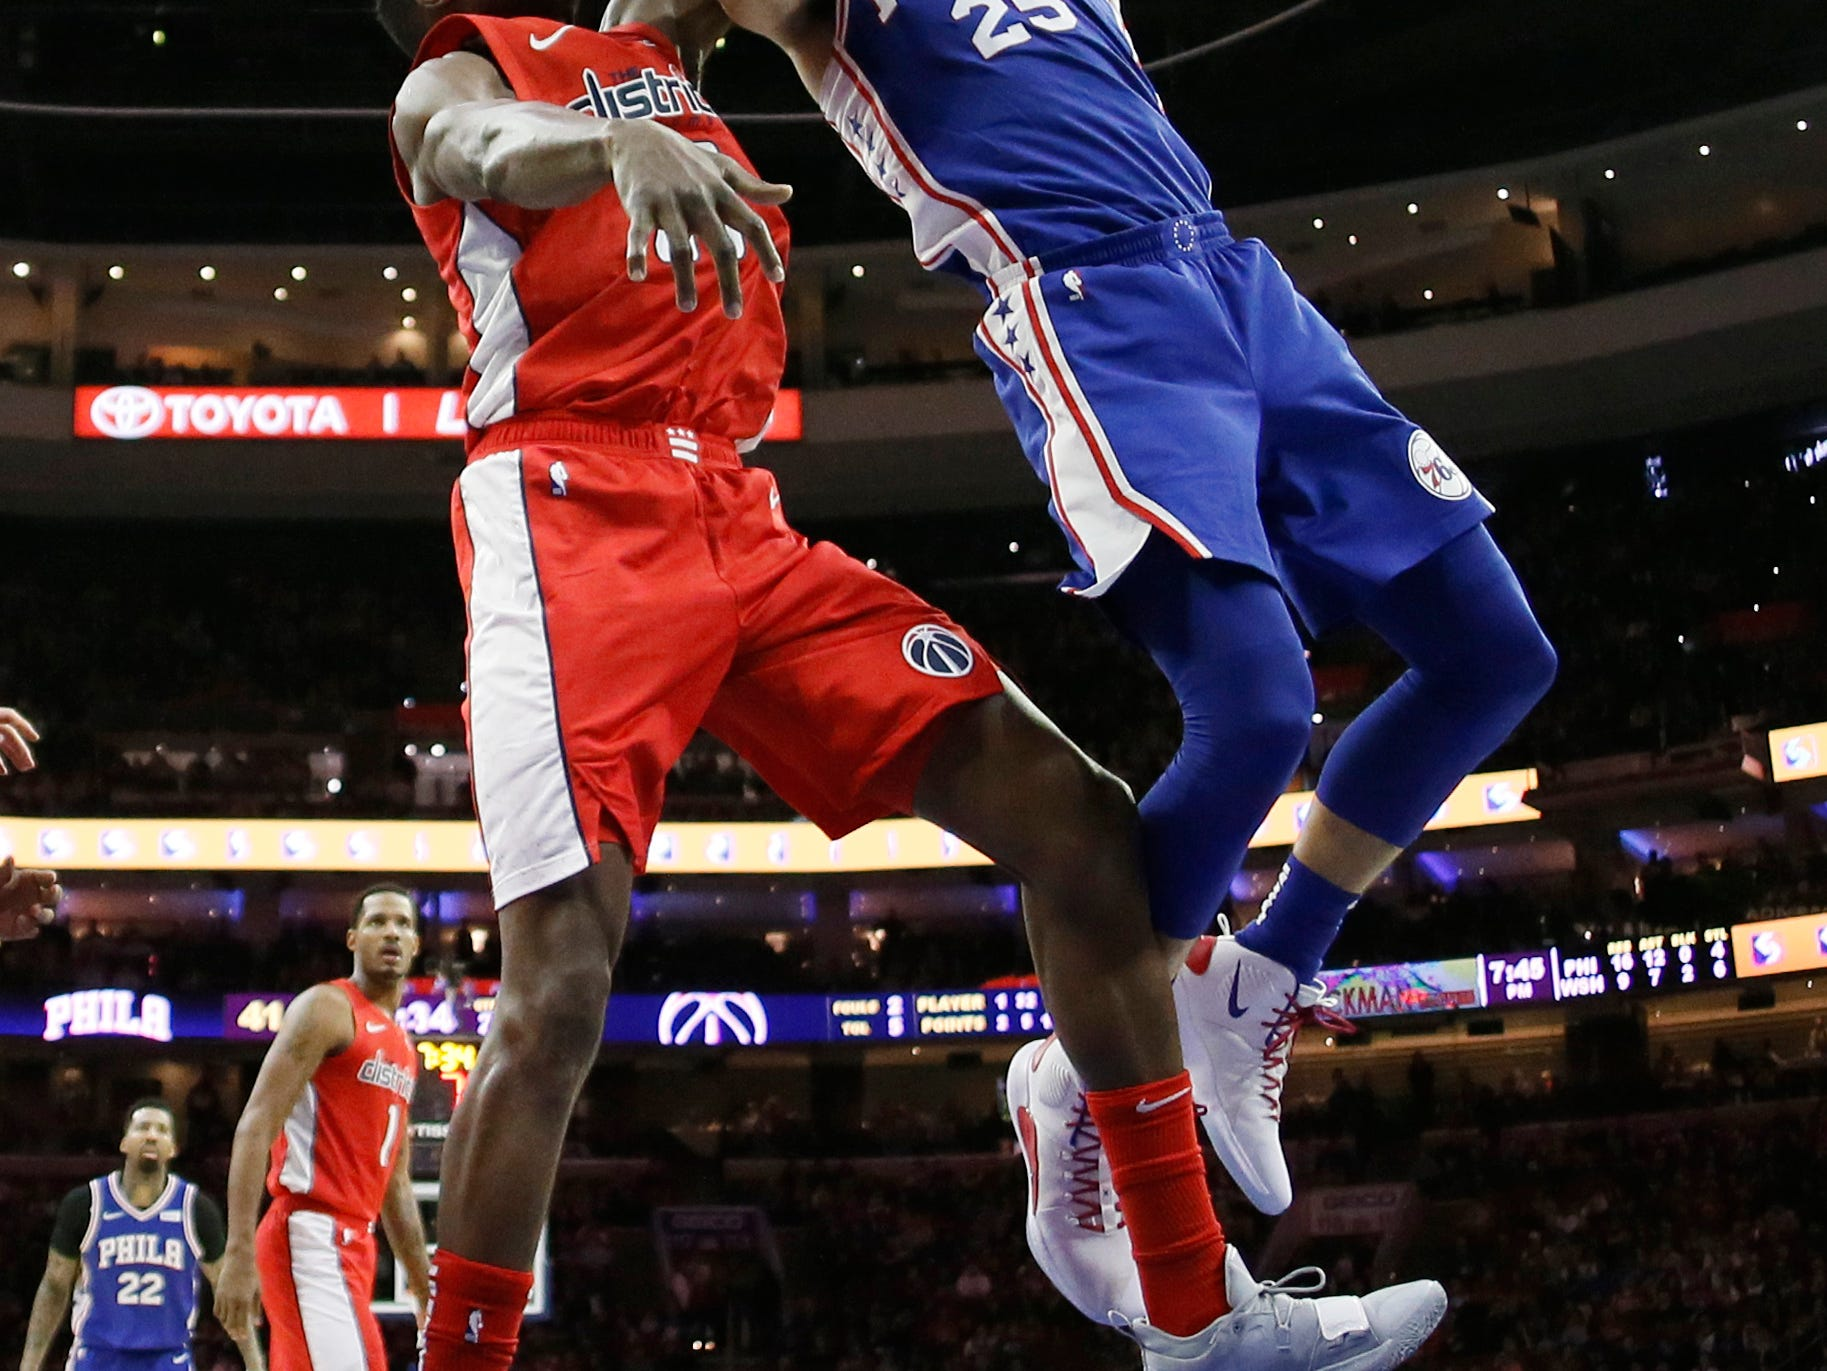 Philadelphia 76ers' Ben Simmons, right, goes up for a shot against Washington Wizards' Ian Mahinmi during the first half of an NBA basketball game, Tuesday, Jan. 8, 2019, in Philadelphia. (AP Photo/Matt Slocum)